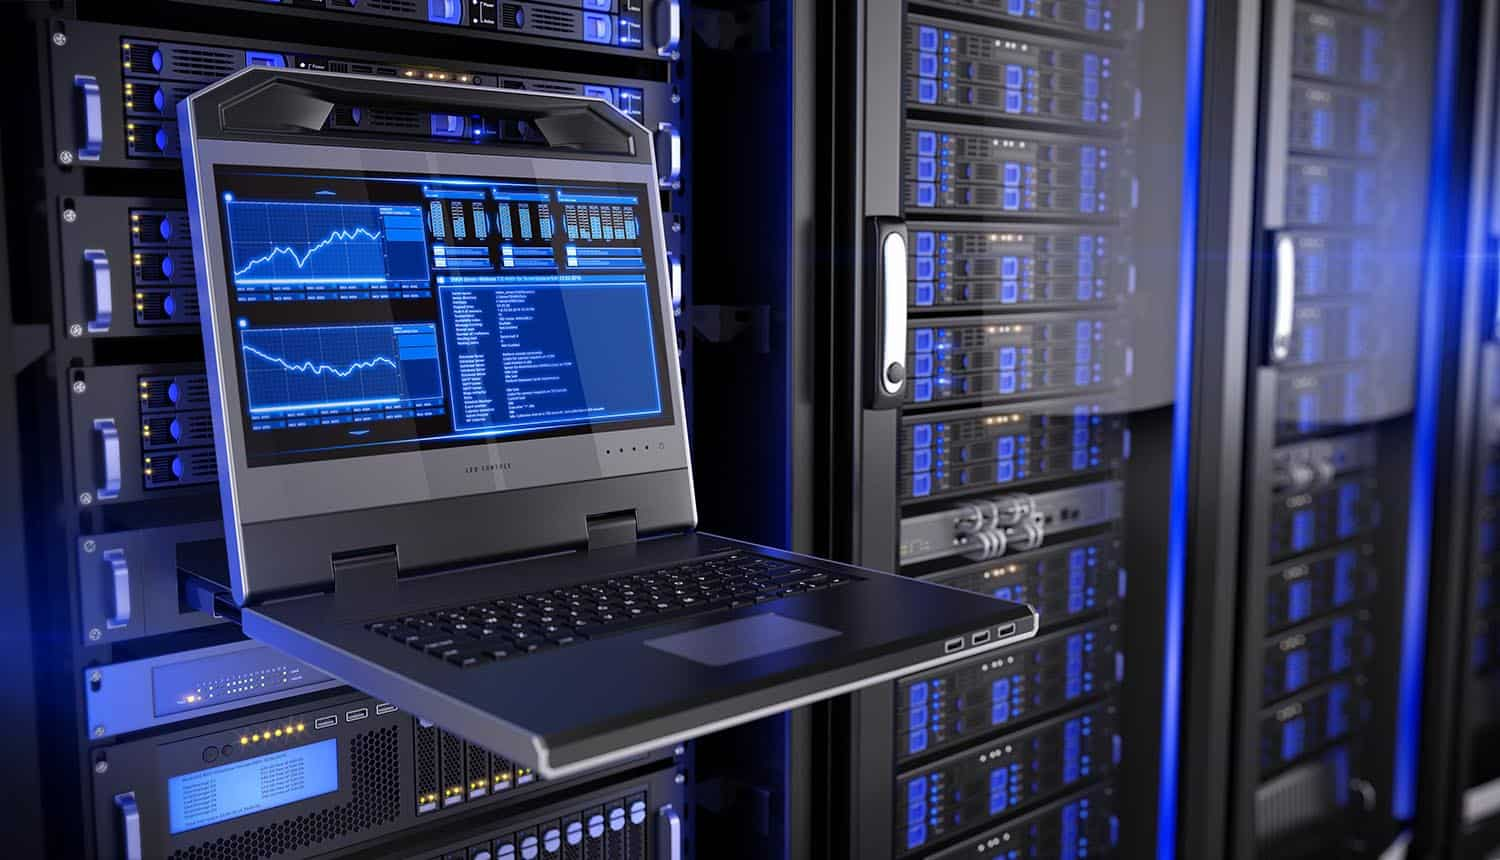 Console on data center rack showing new cyber security directive which requires U.S. federal agencies to patch vulnerabilities twice as fast